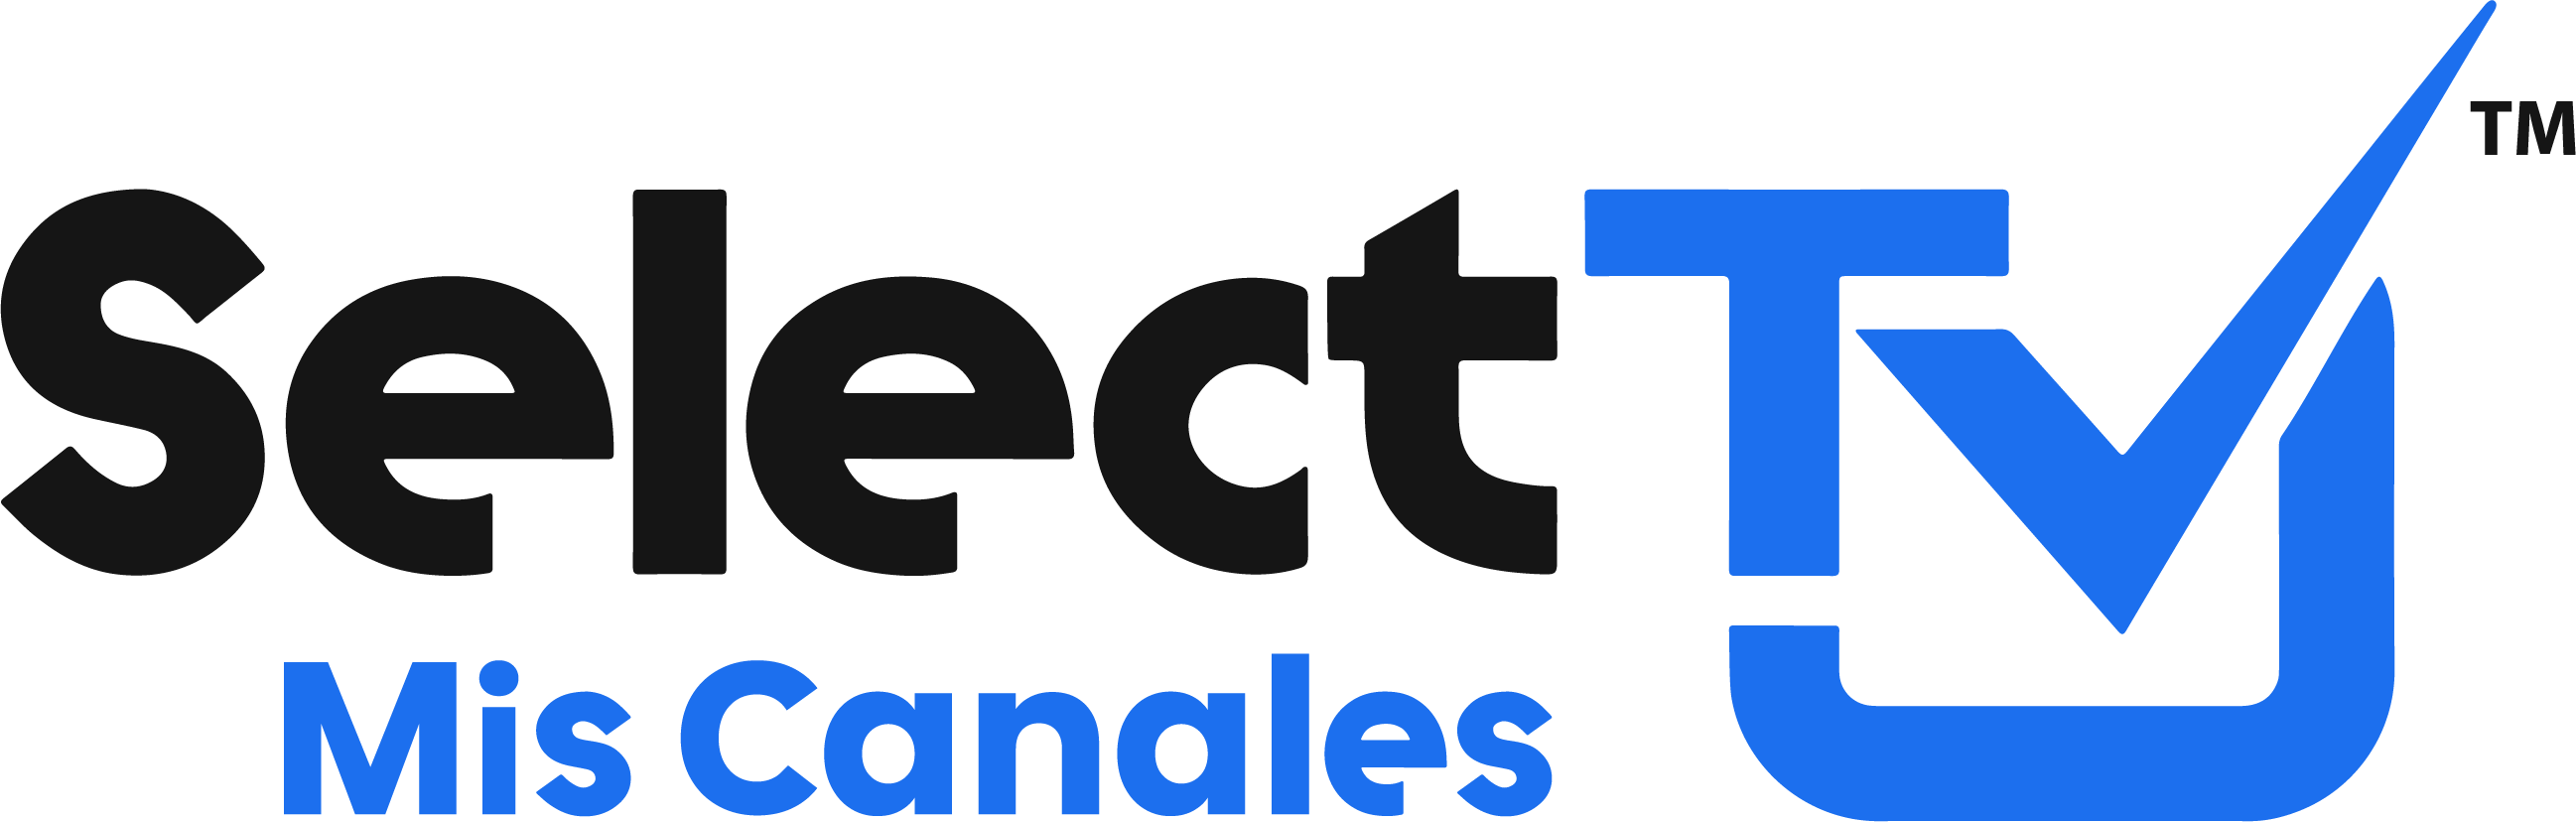 FreeCast Appeals to Hispanic Consumers with its New SelectTV Mis Canales Package